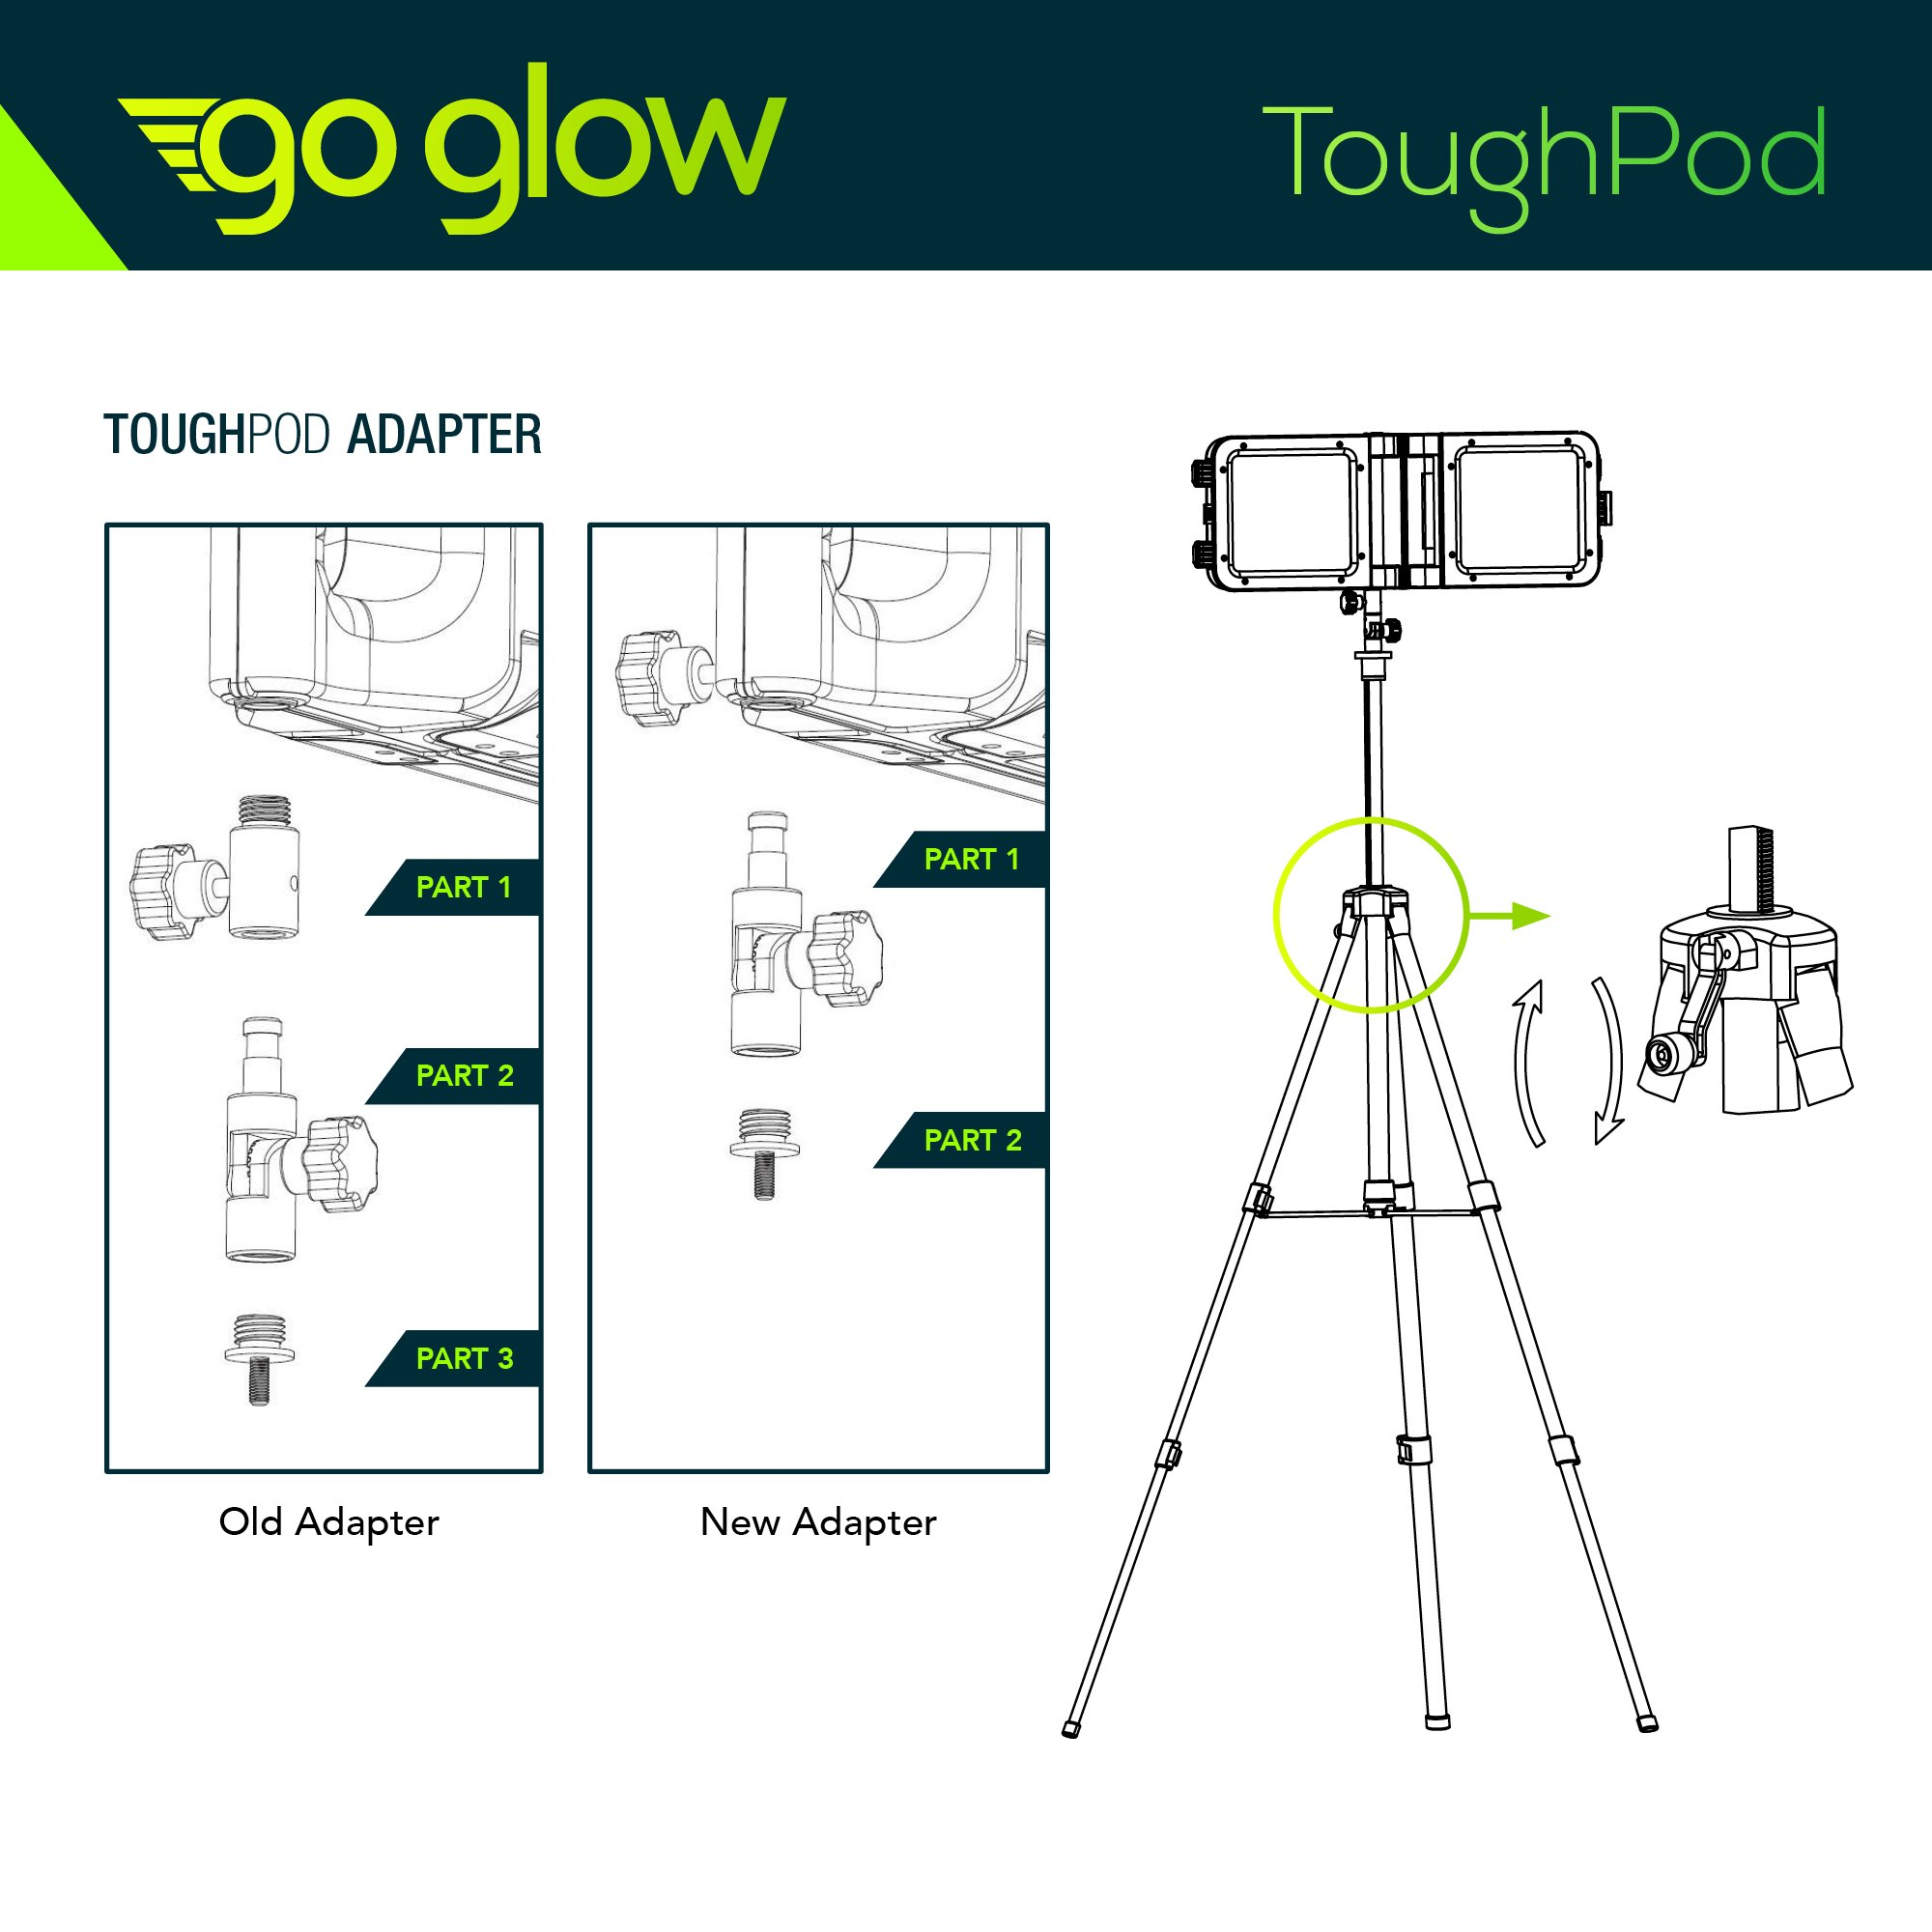 GoGlow LiteBook Bundle - Upgraded 2.0 TRIPOD INCLUDED - 30W Portable Rechargeable Day Light White Light (5000-5500k) Work Light, Camping, Garage or Auto Repair, Emergency (Green) by Enpower (Image #7)